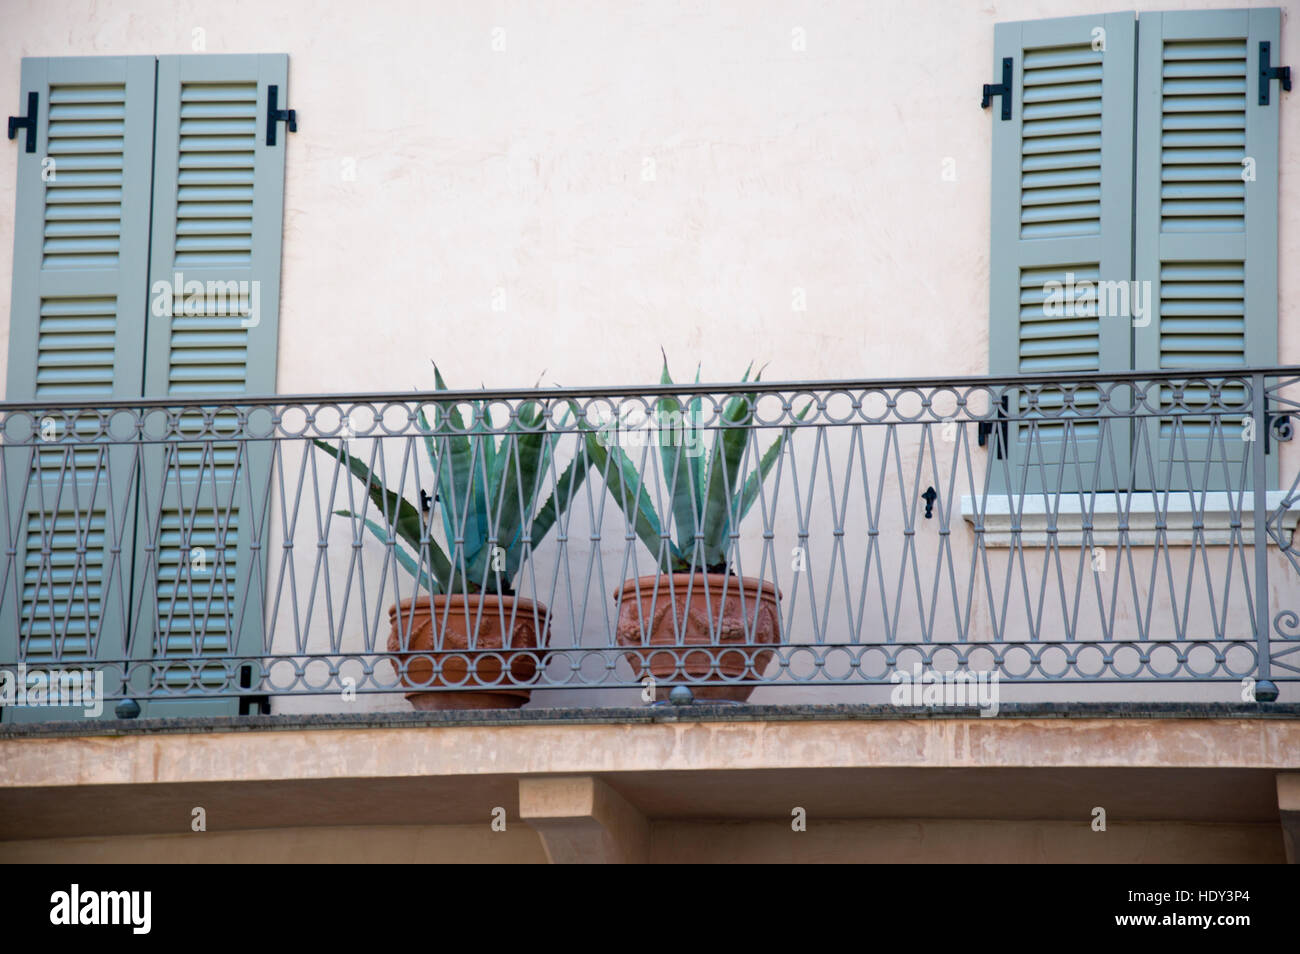 Agave plants growing in terracotta pots on a balcony in Peschiera del Garda, Italy - Stock Image